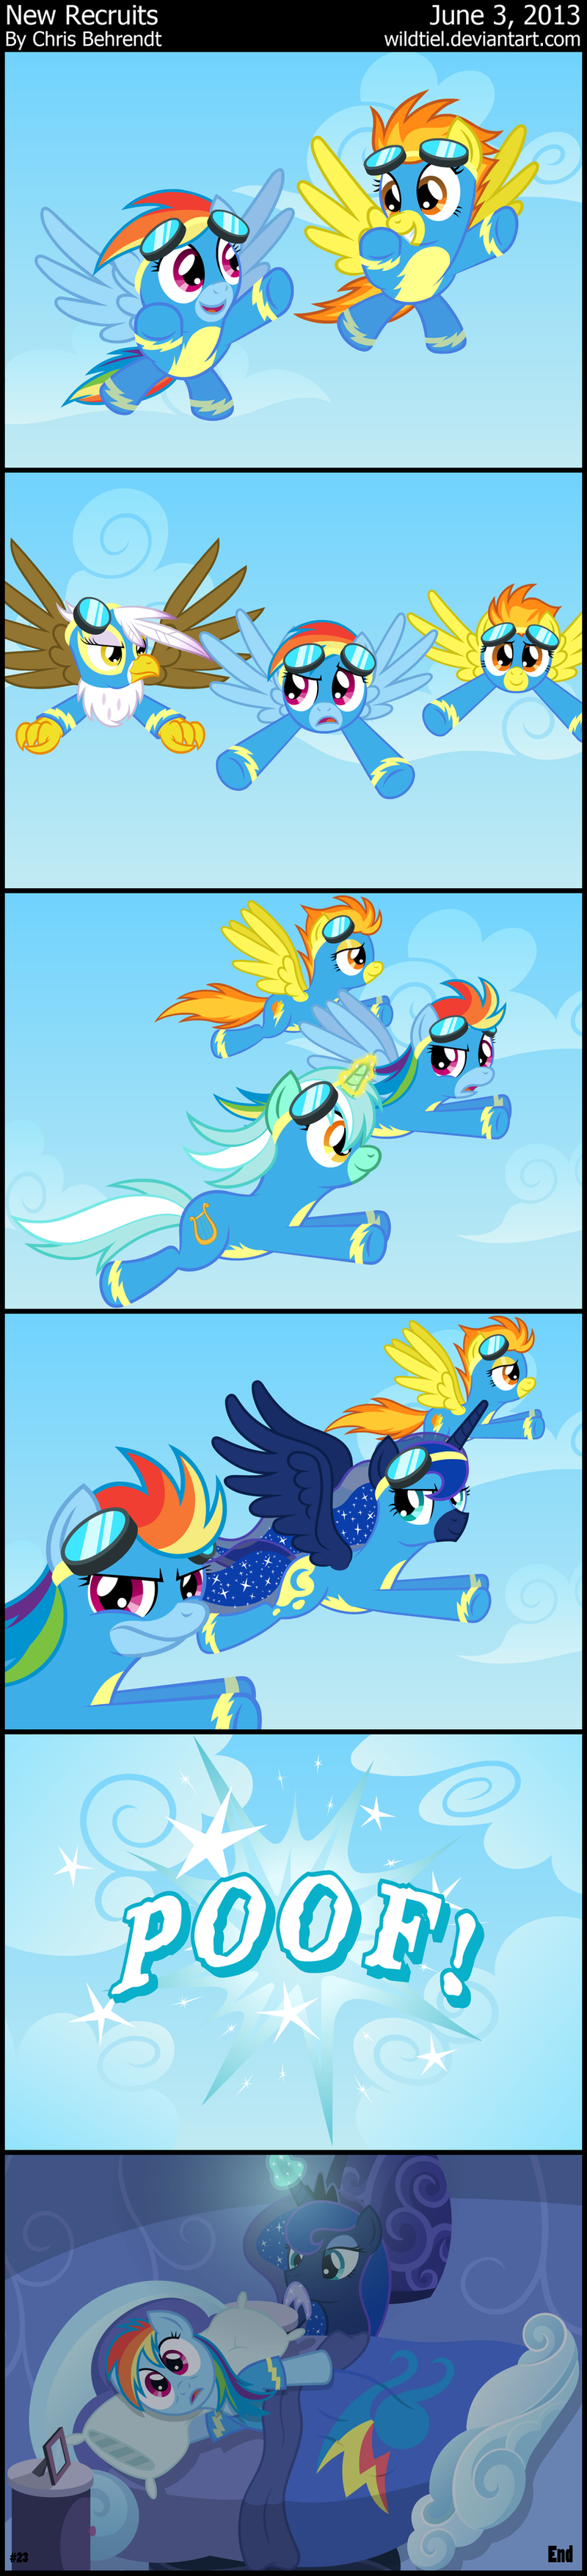 New Recruits by wildtiel